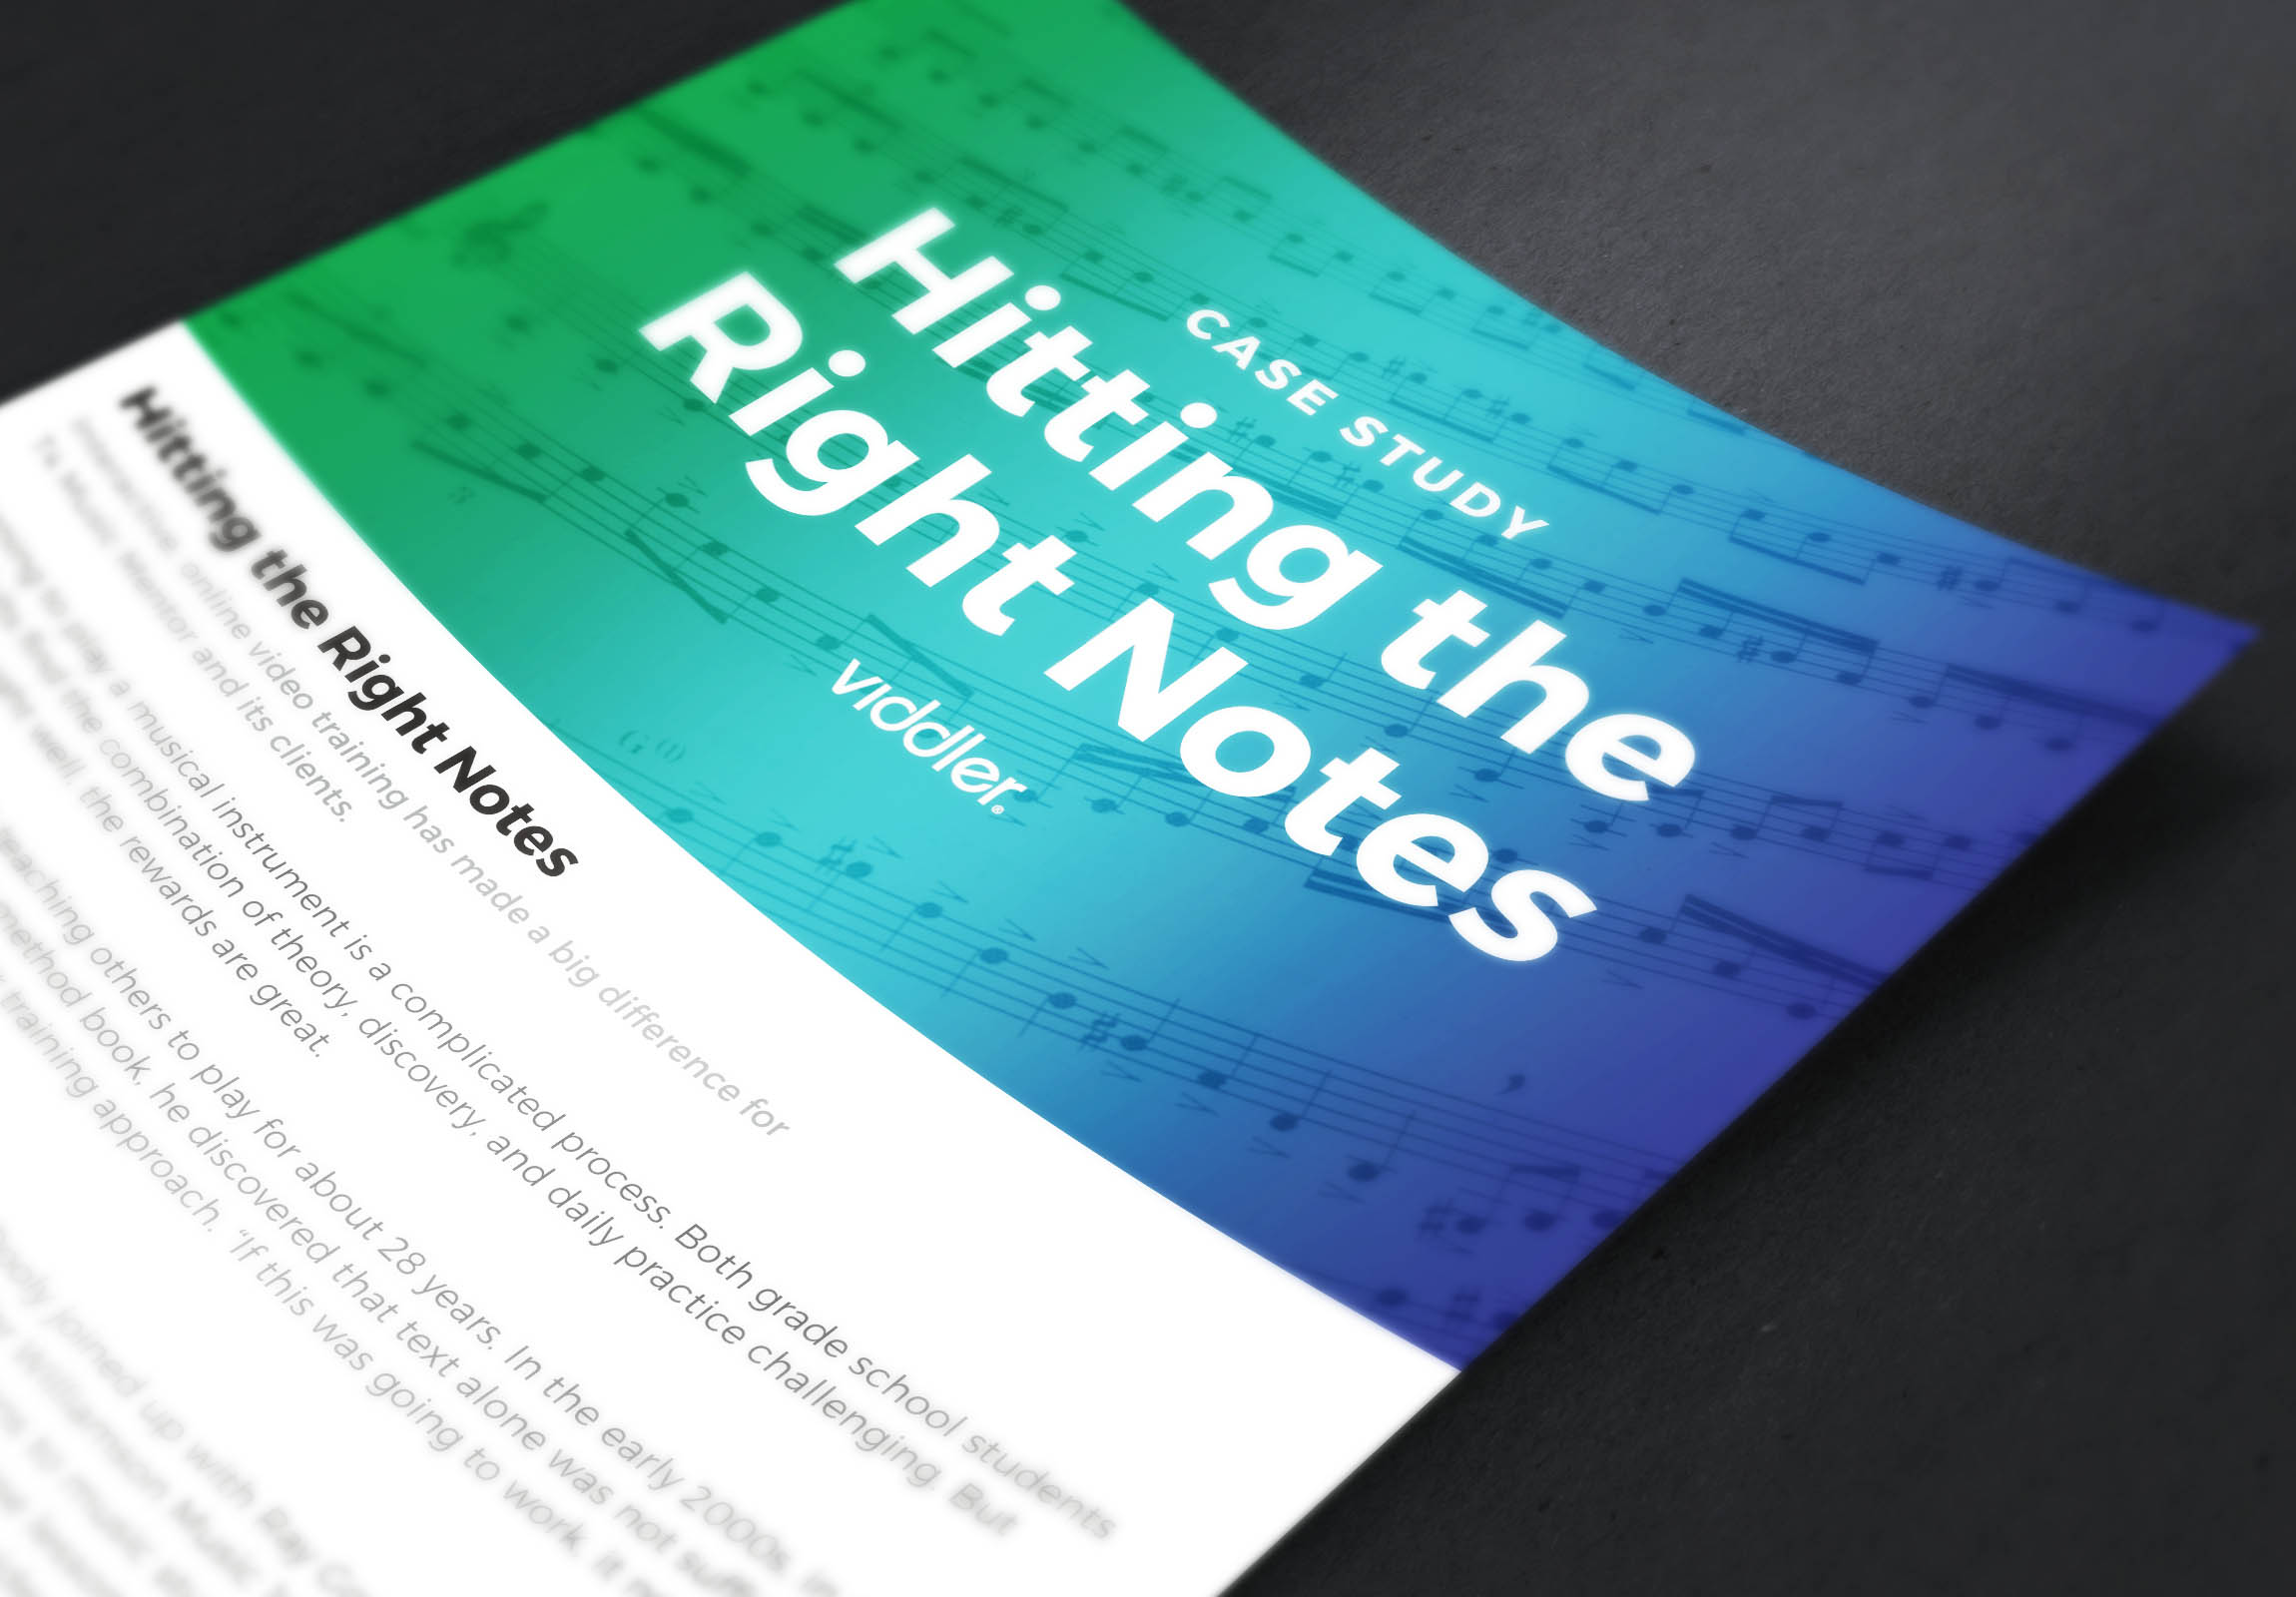 Viddler Case Study - Hitting the Right Notes